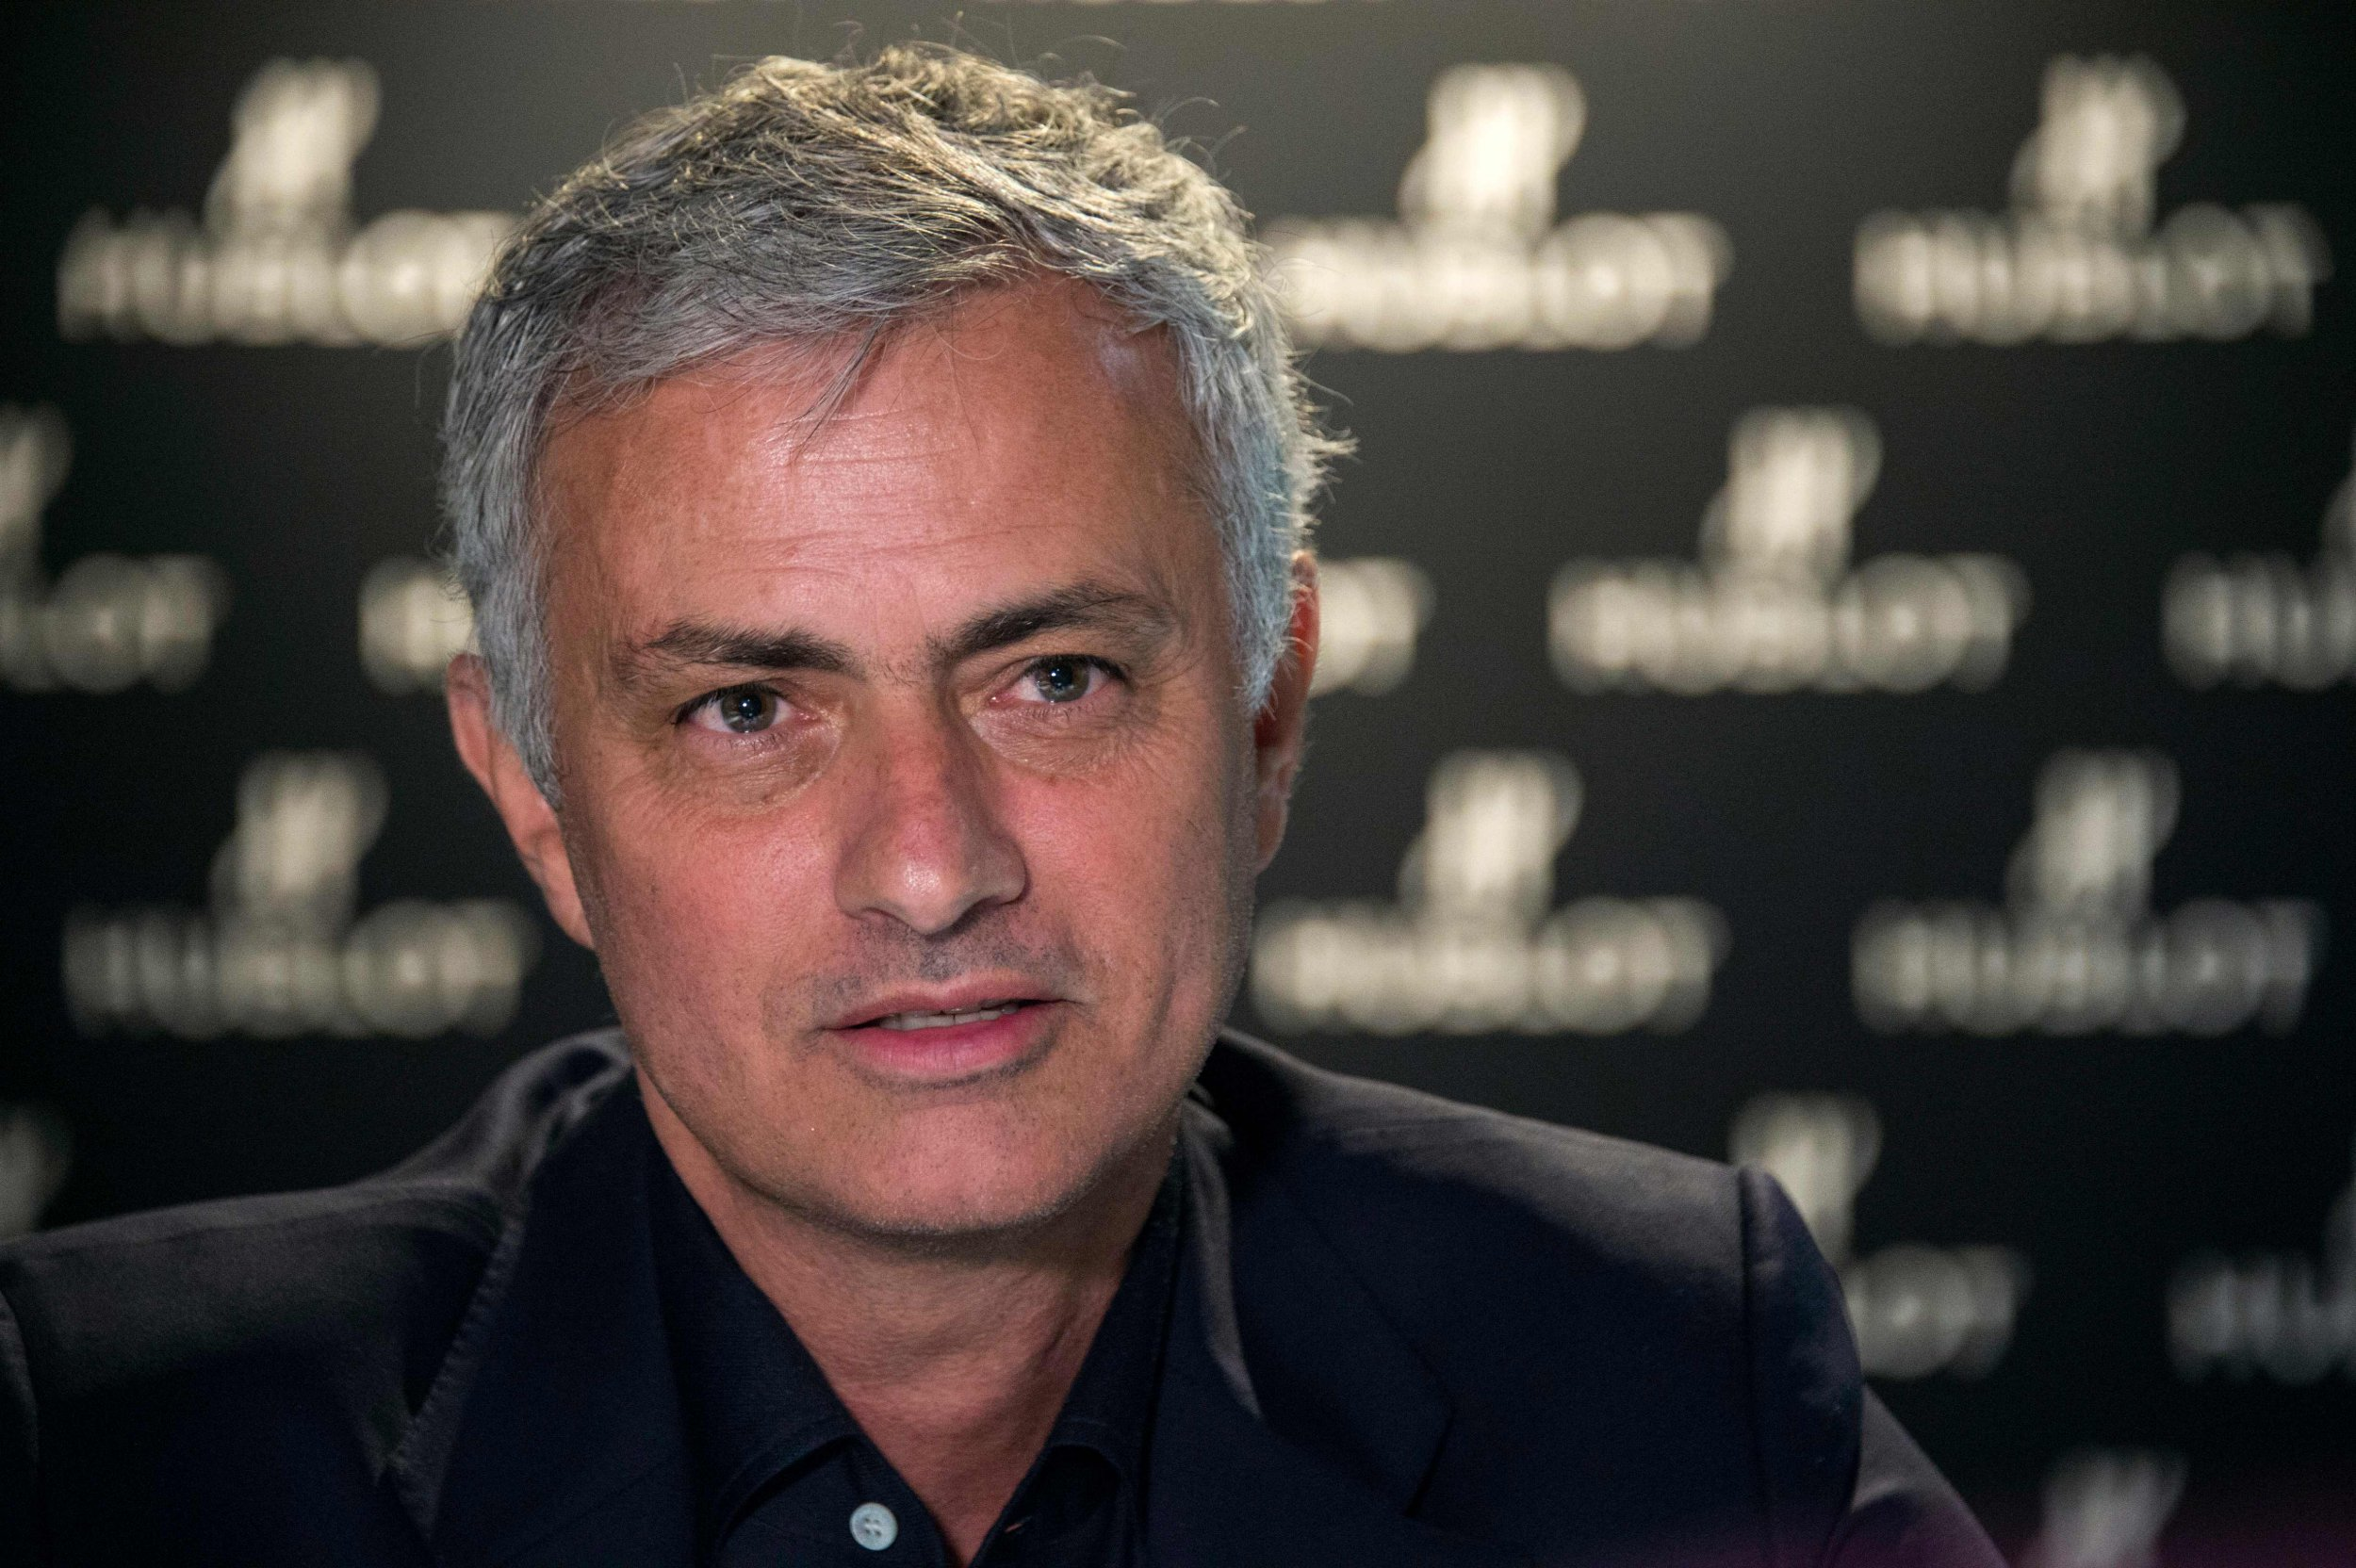 Former Manchester United's Portuguese coach Jose Mourinho speaks answers to journalists at the Baselworld watch and jewellery fair in Basel on March 22, 2019. (Photo by SEBASTIEN BOZON / AFP)SEBASTIEN BOZON/AFP/Getty Images